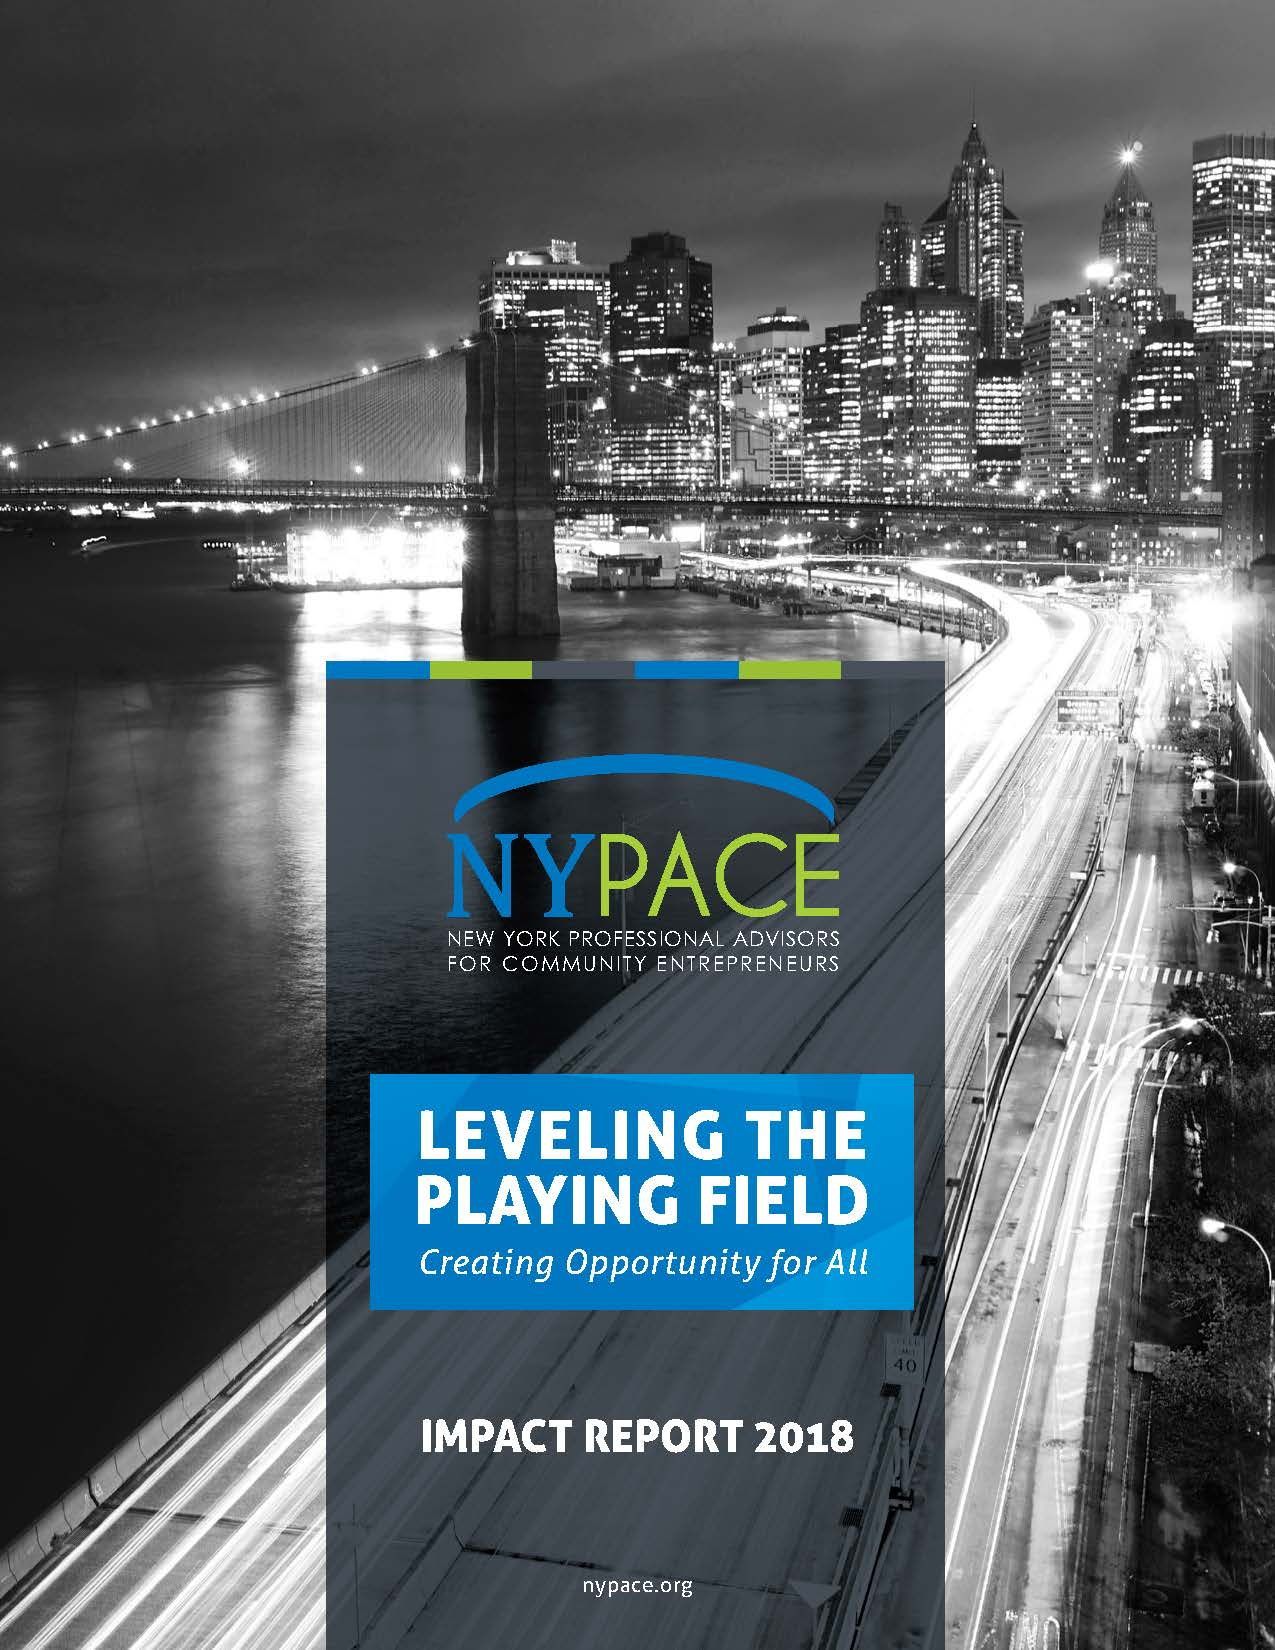 011-NYP-18_2018 Impact Report_FINAL-2_Page_1.jpg